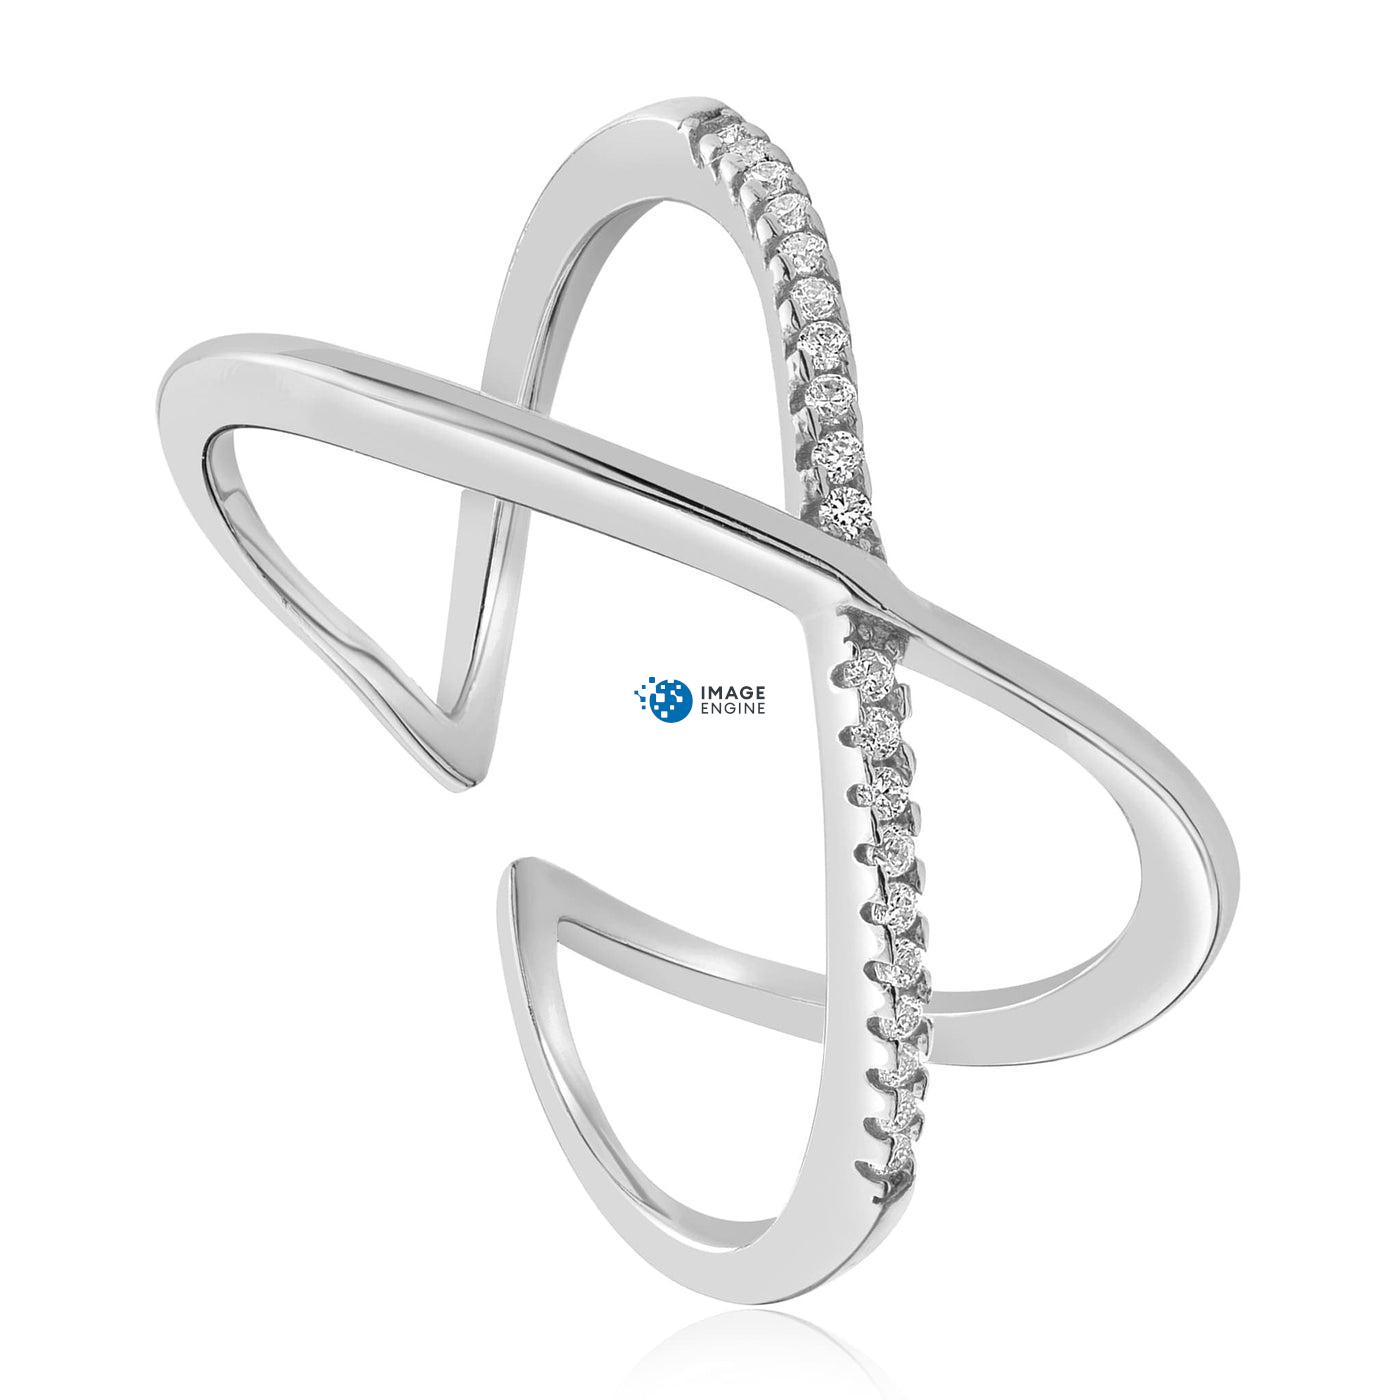 Nadia X Infinity Ring - Three Quarter View - 925 Sterling Silver